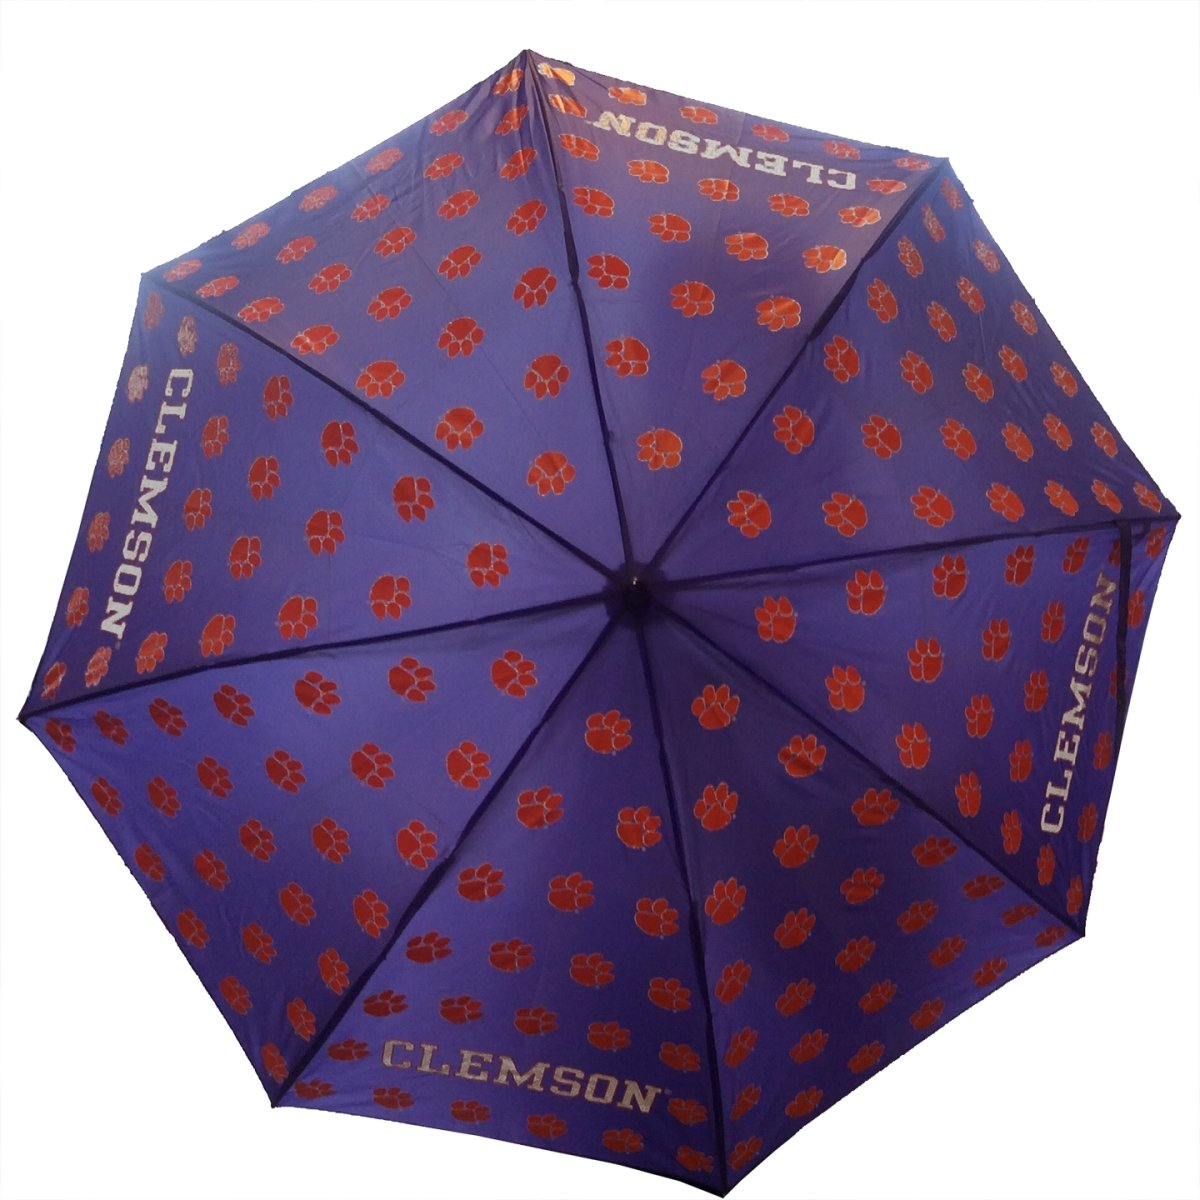 "Clemson Tigers 48"" All-over Paw Umbrella - Mr. Knickerbocker"